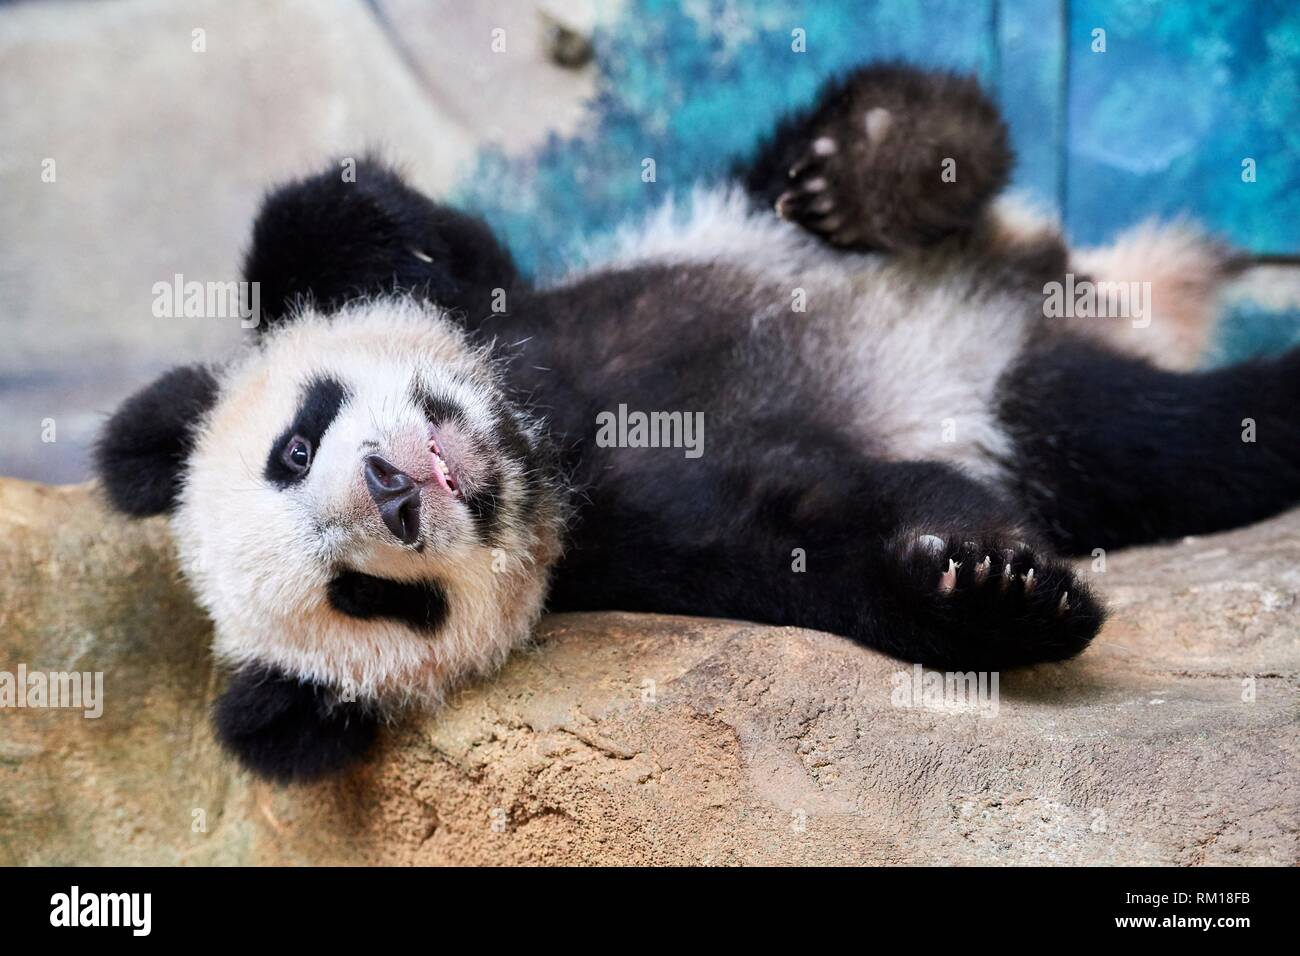 Playful giant panda cub (Ailuropoda melanoleuca) upside down. Yuan Meng, first Giant panda even born in France, now aged 10 months, Beauval Zoo, Stock Photo